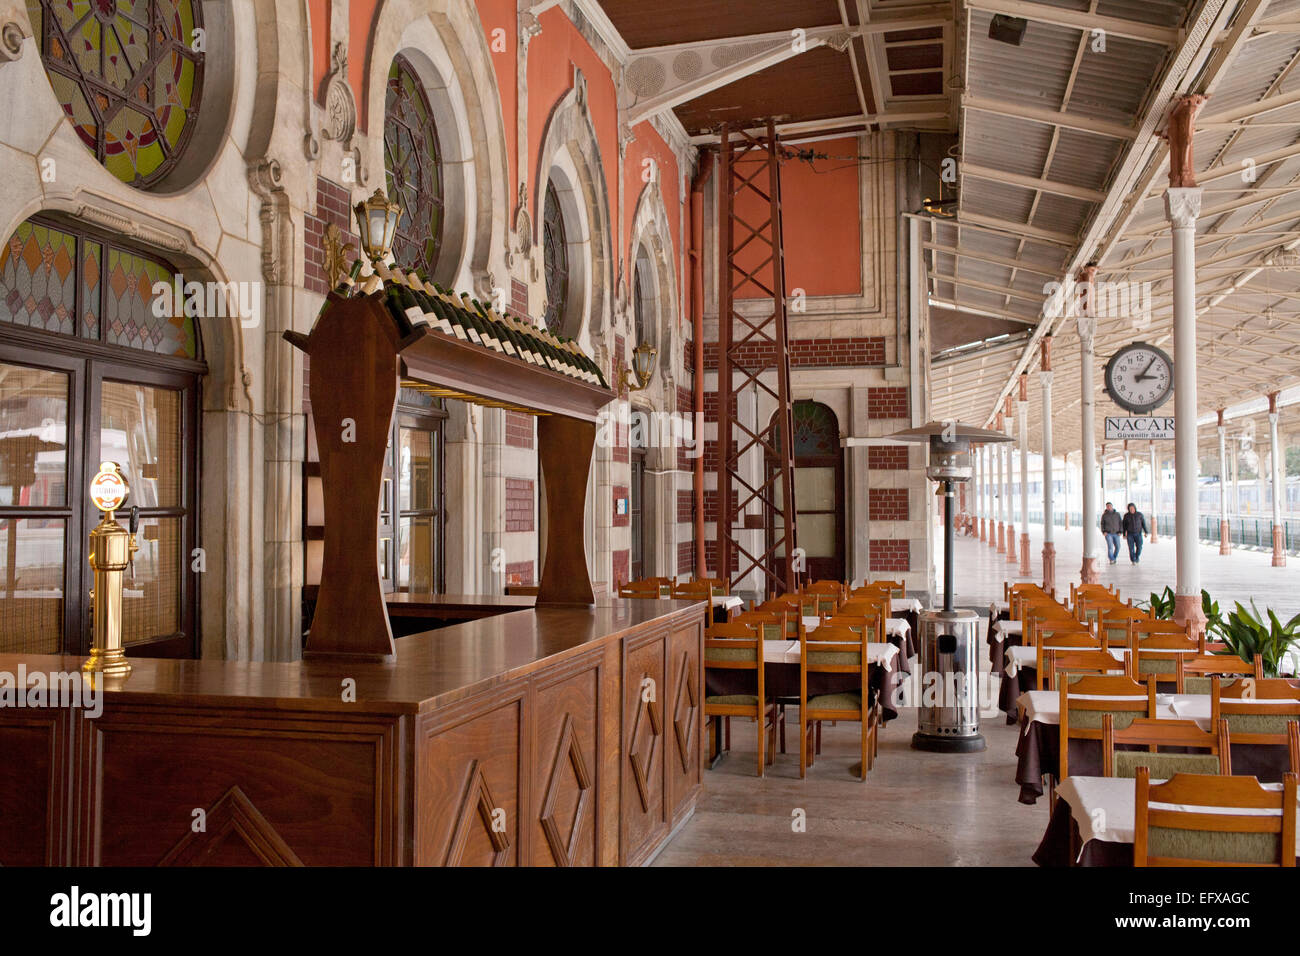 sirkeci station istanbul destination for orient express stock photo royalty free image. Black Bedroom Furniture Sets. Home Design Ideas